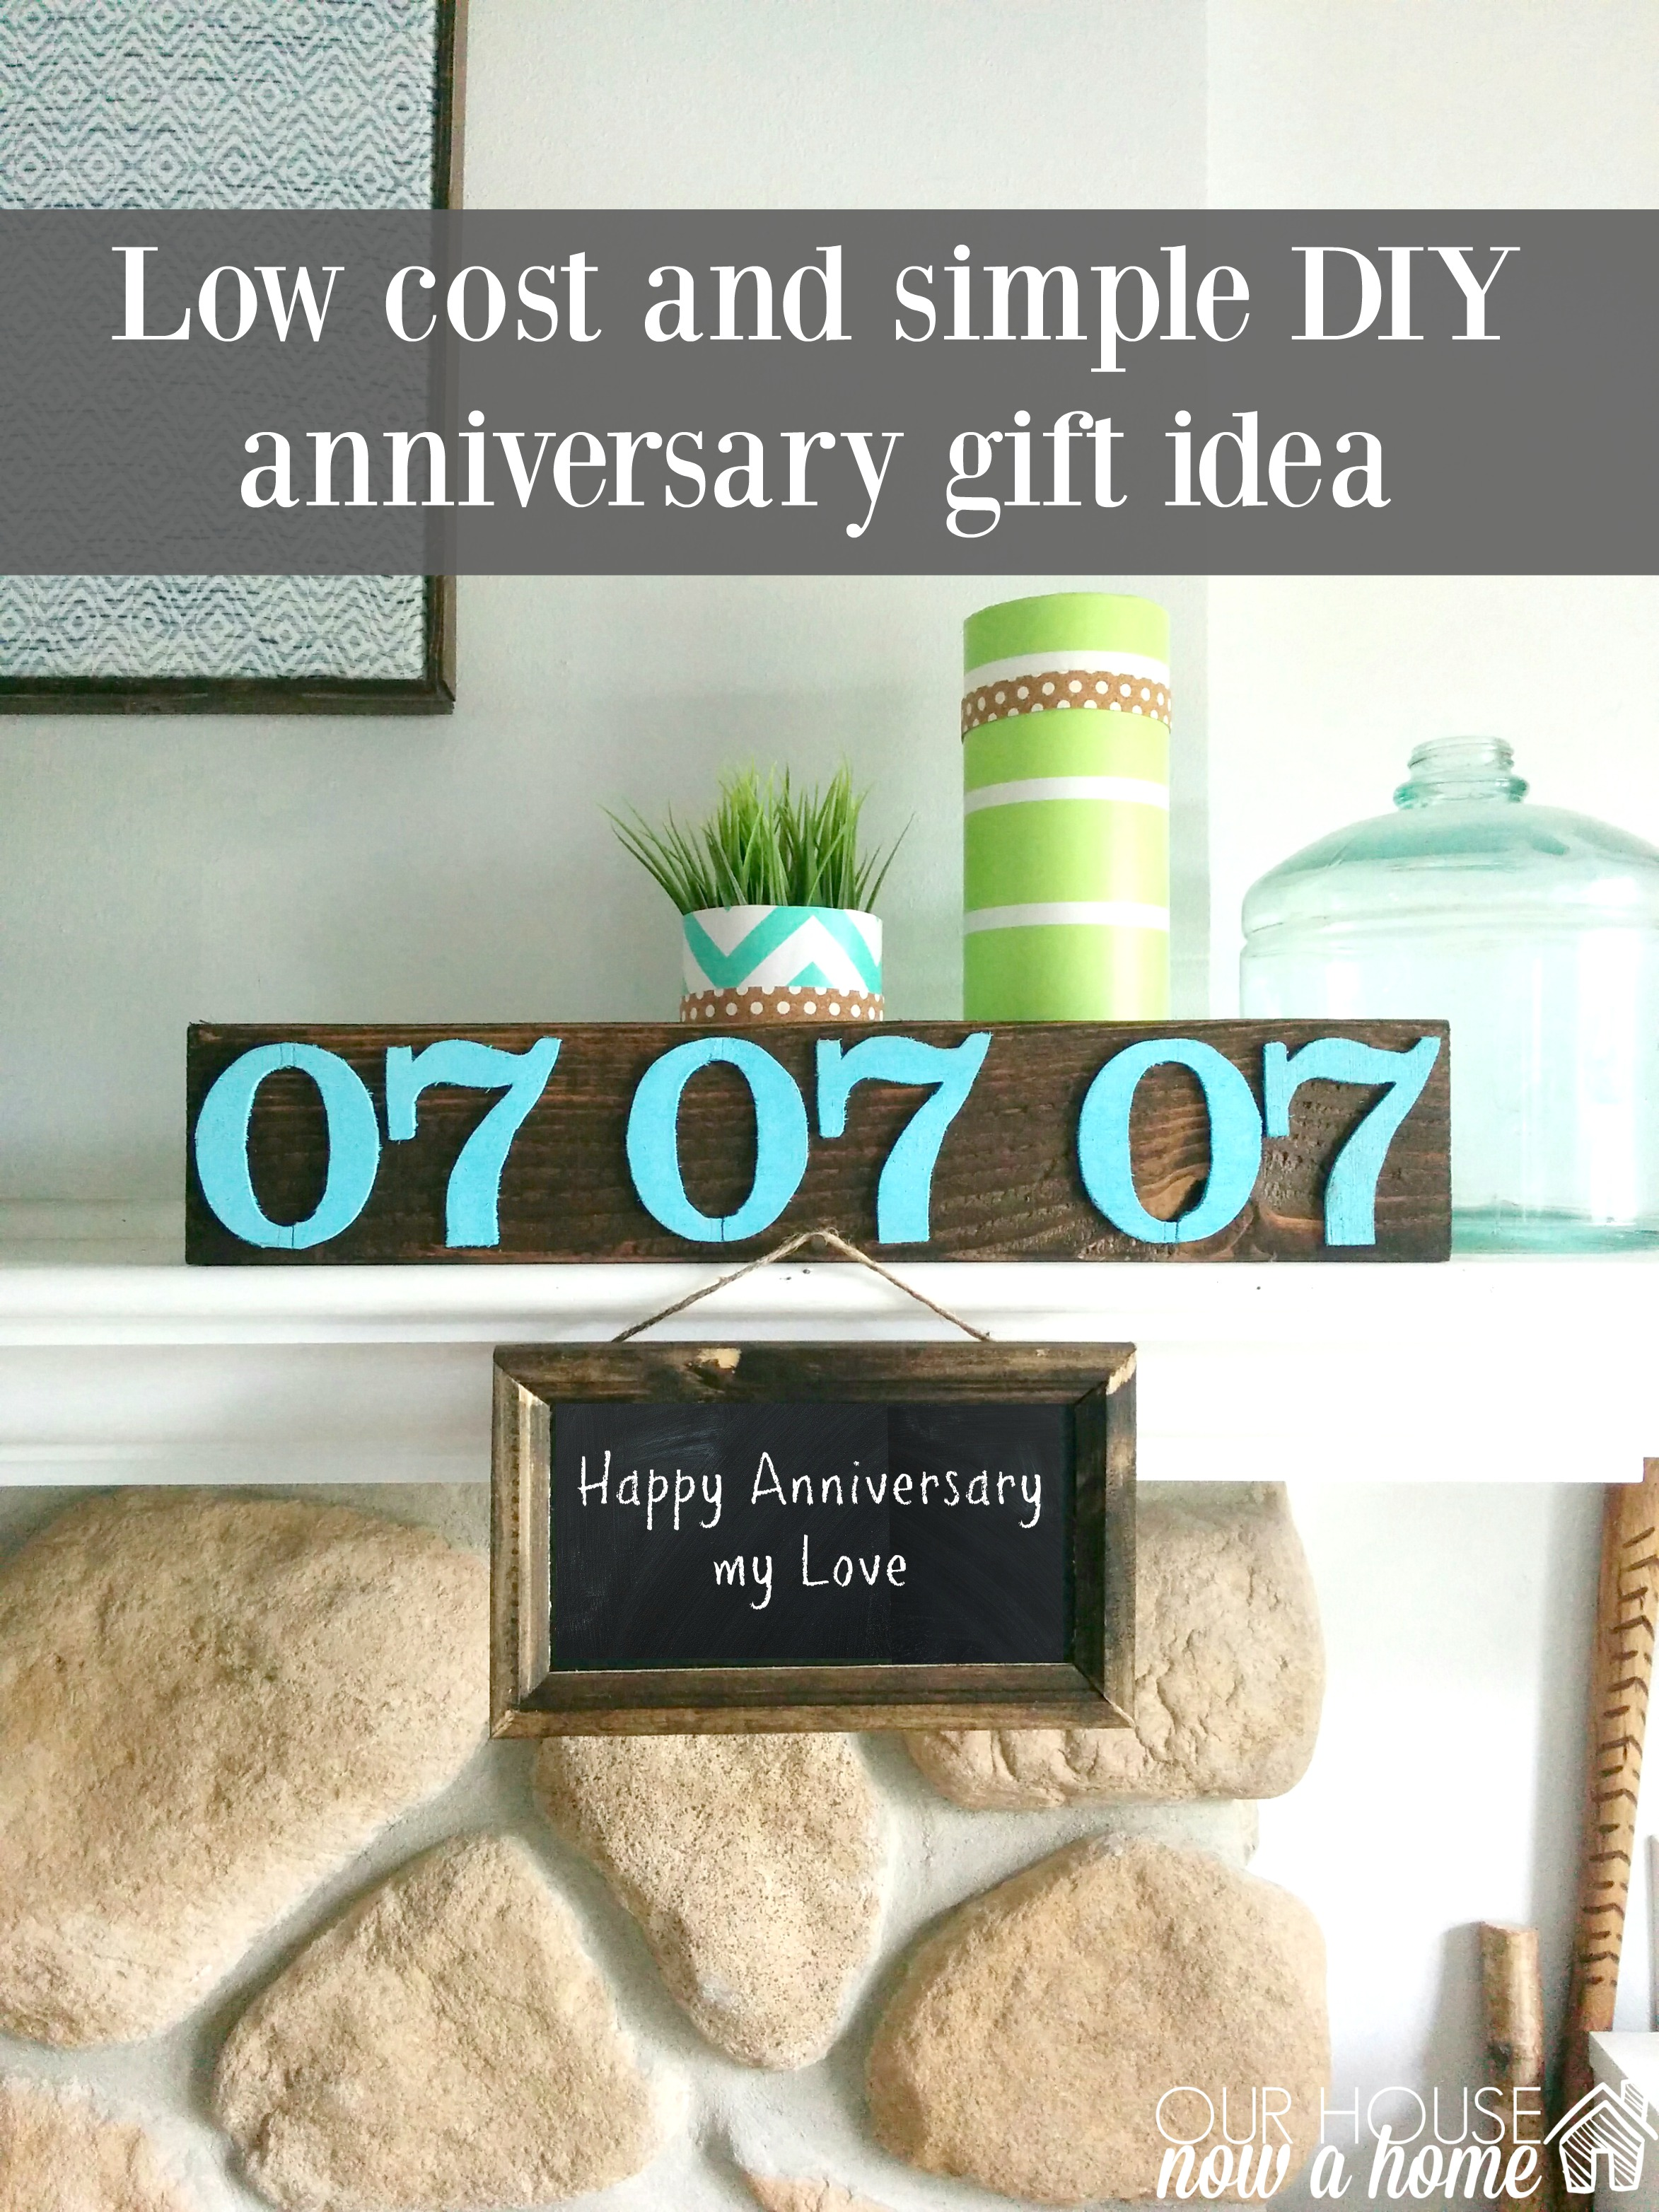 Wedding Anniversary Gift Ideas Diy : DIY and low cost anniversary gift ideasOur House Now a Home